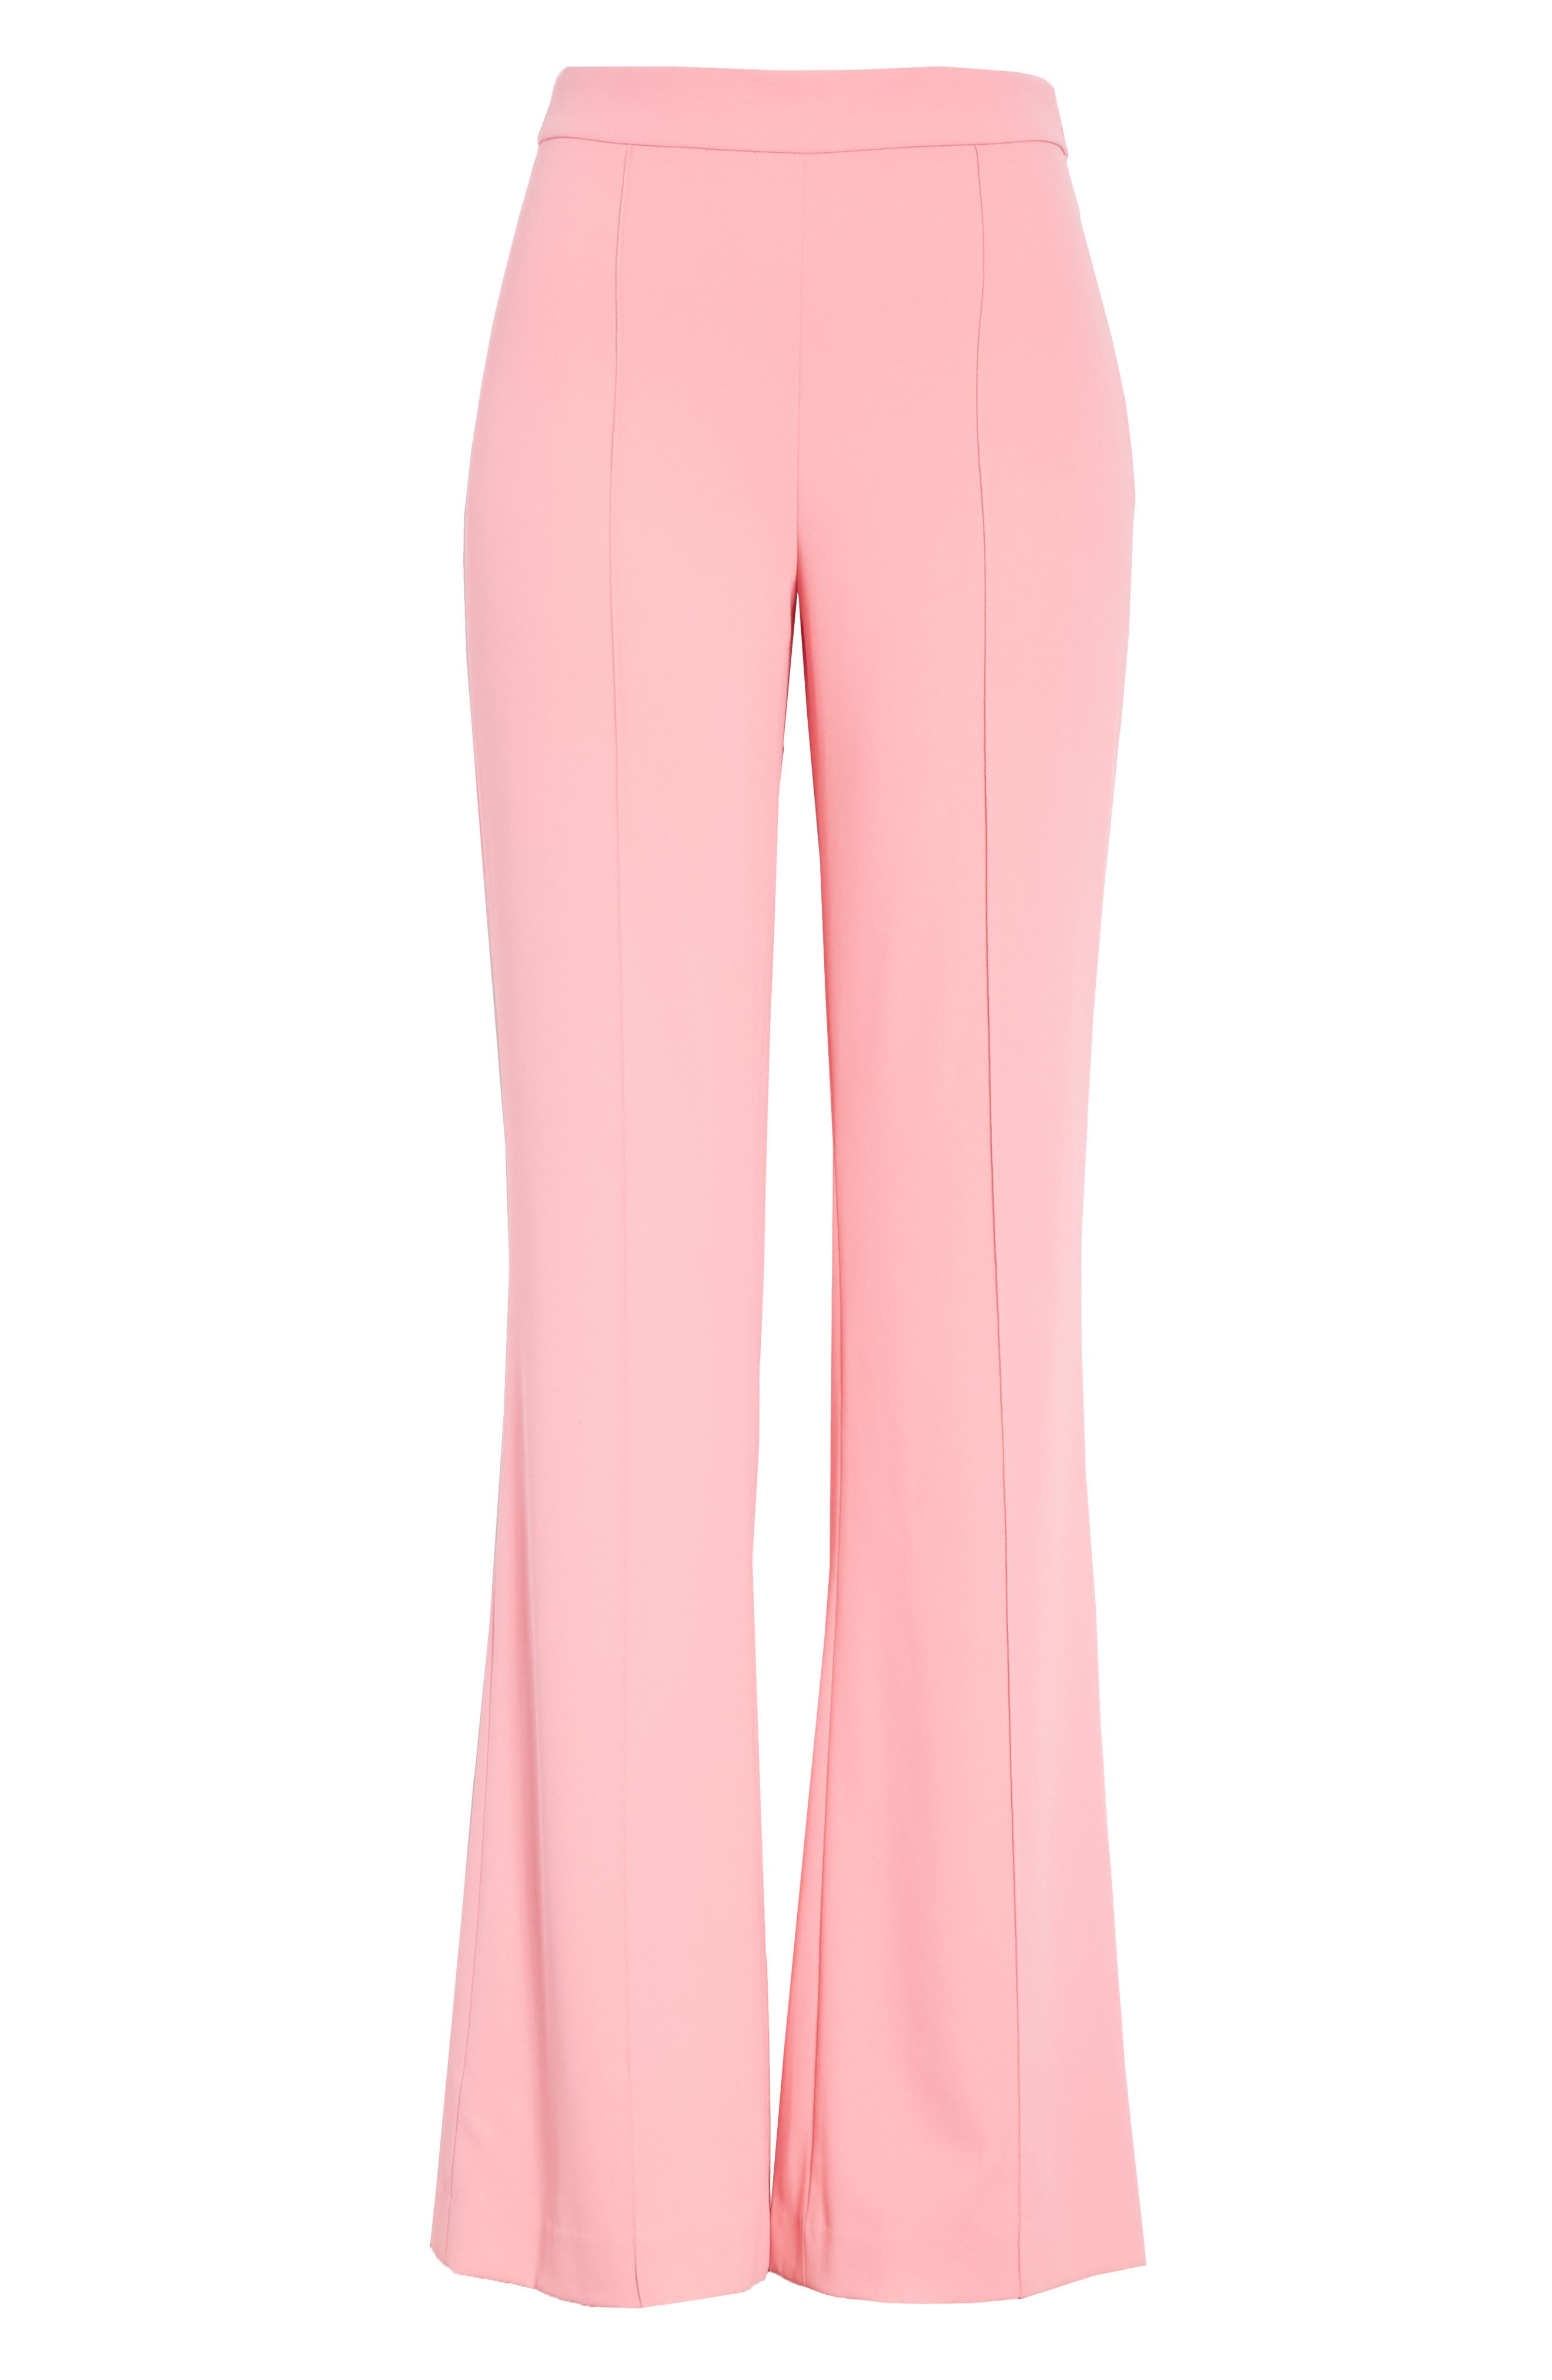 Jalisa High Waist Flare Pants,                             Alternate thumbnail 6, color,                             650